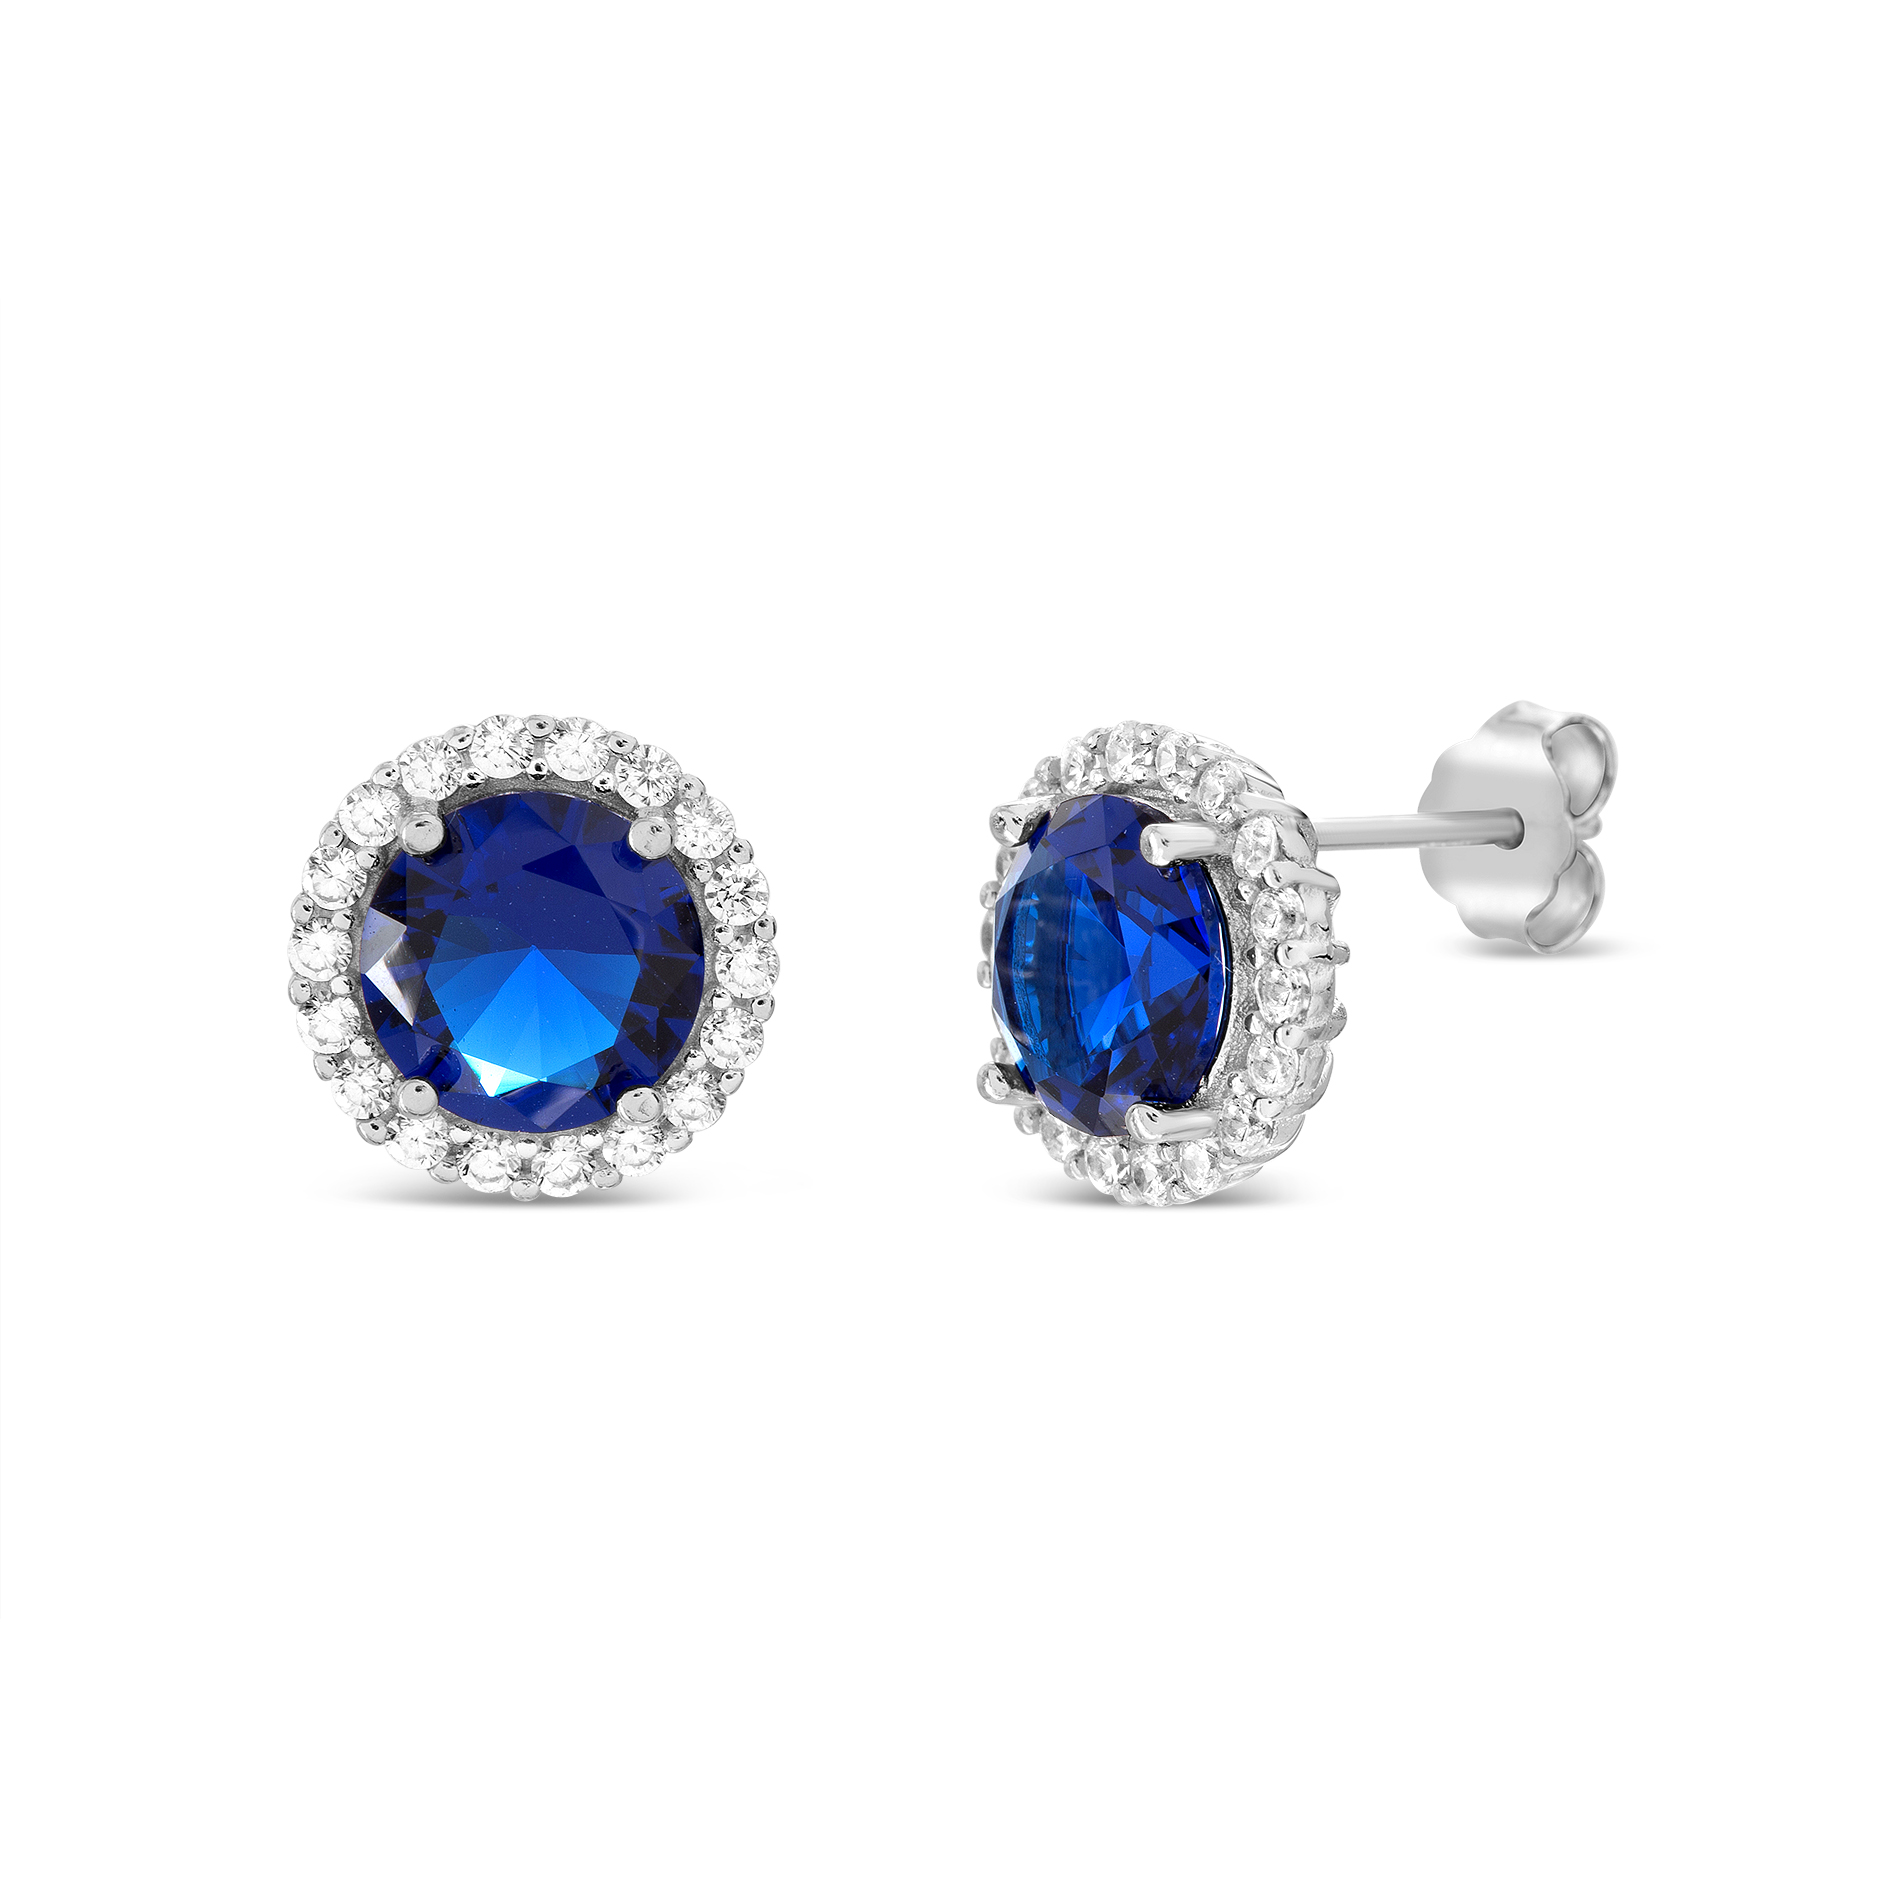 Sterling Silver and Sapphire Bezel Earrings